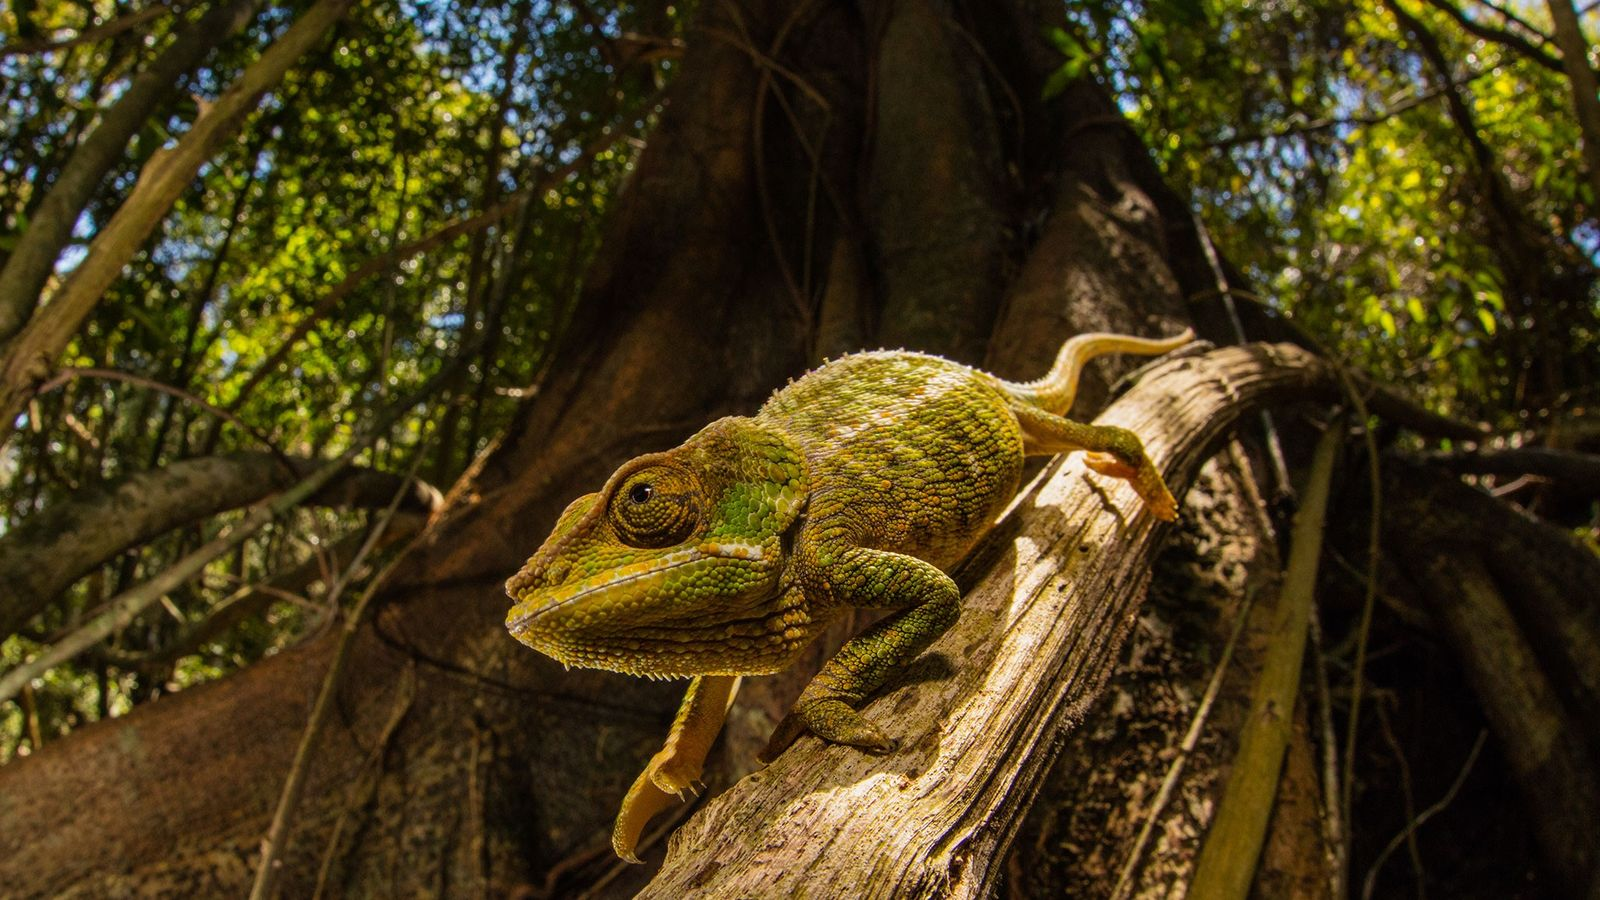 Chameleons can change skin colour based on their surroundings. A new 'smart' skin, designed to use ...